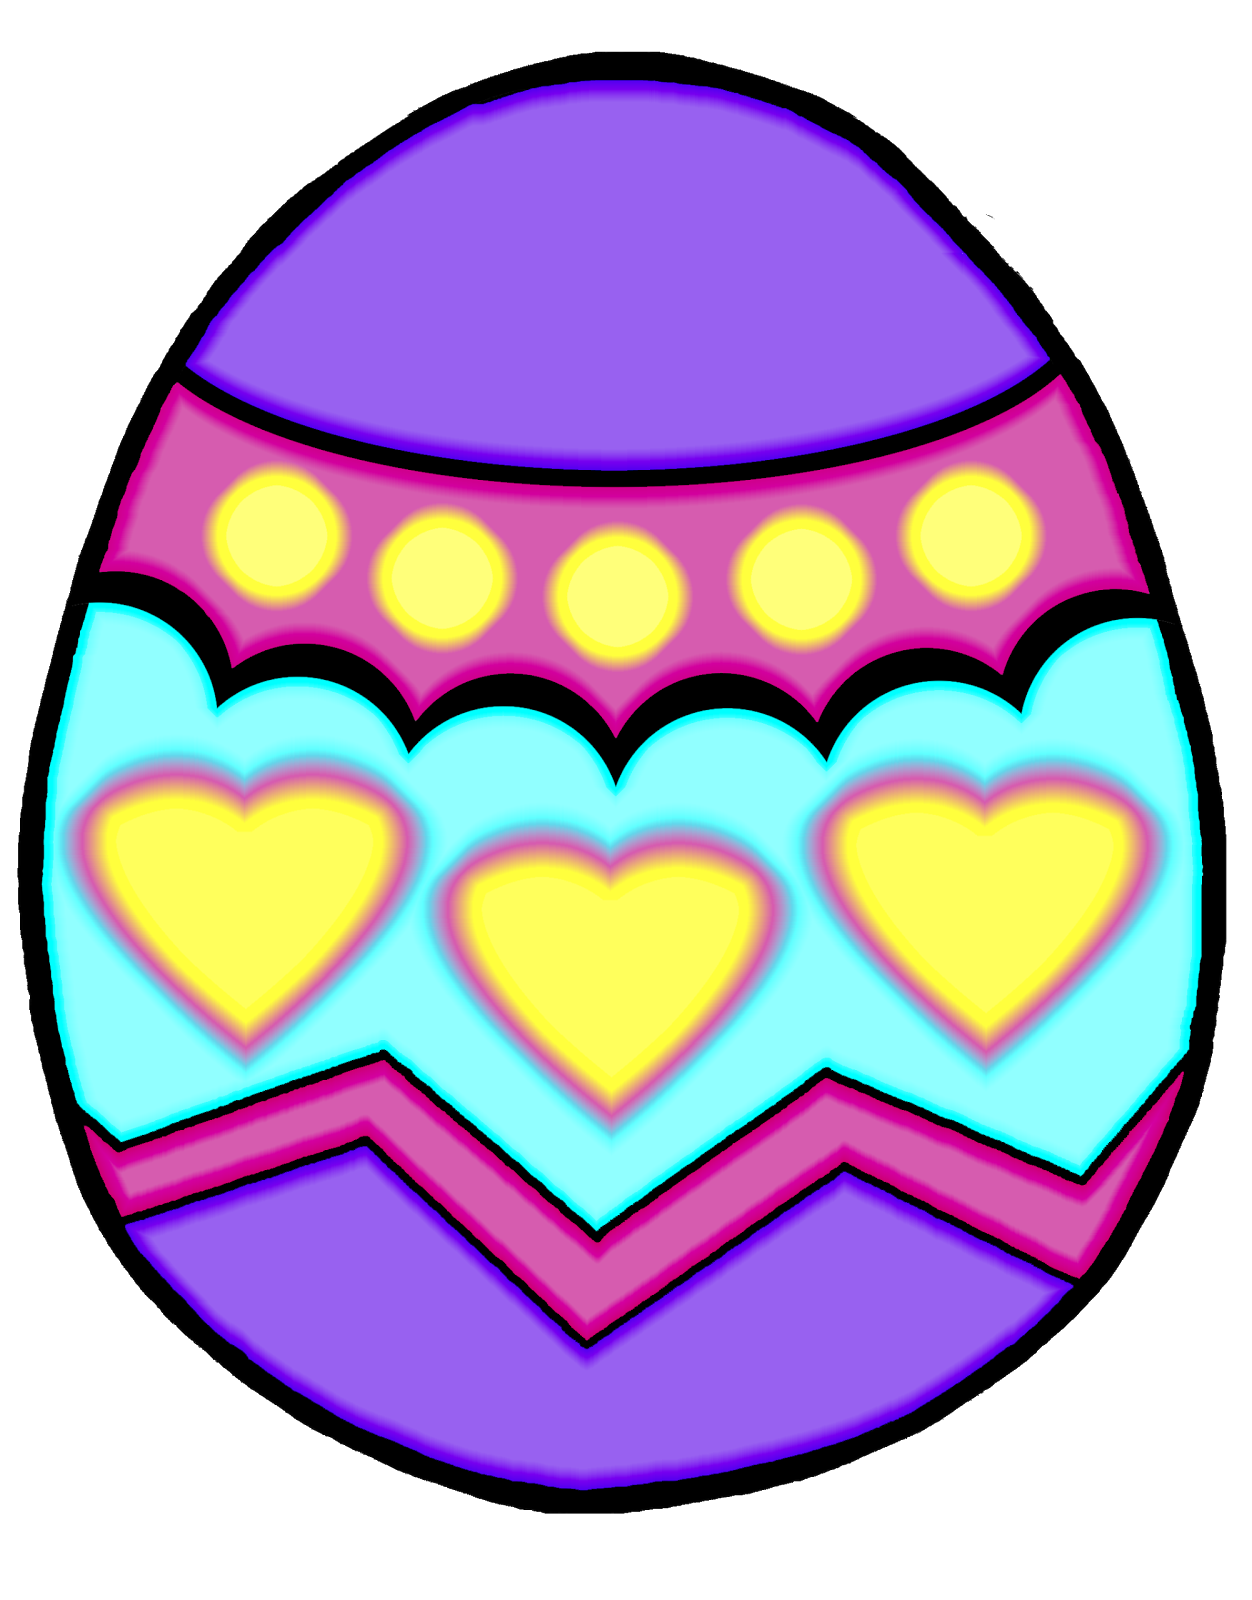 Easter egg hunt clipart christian clipart transparent Easter Pictures Clipart at GetDrawings.com | Free for personal use ... clipart transparent